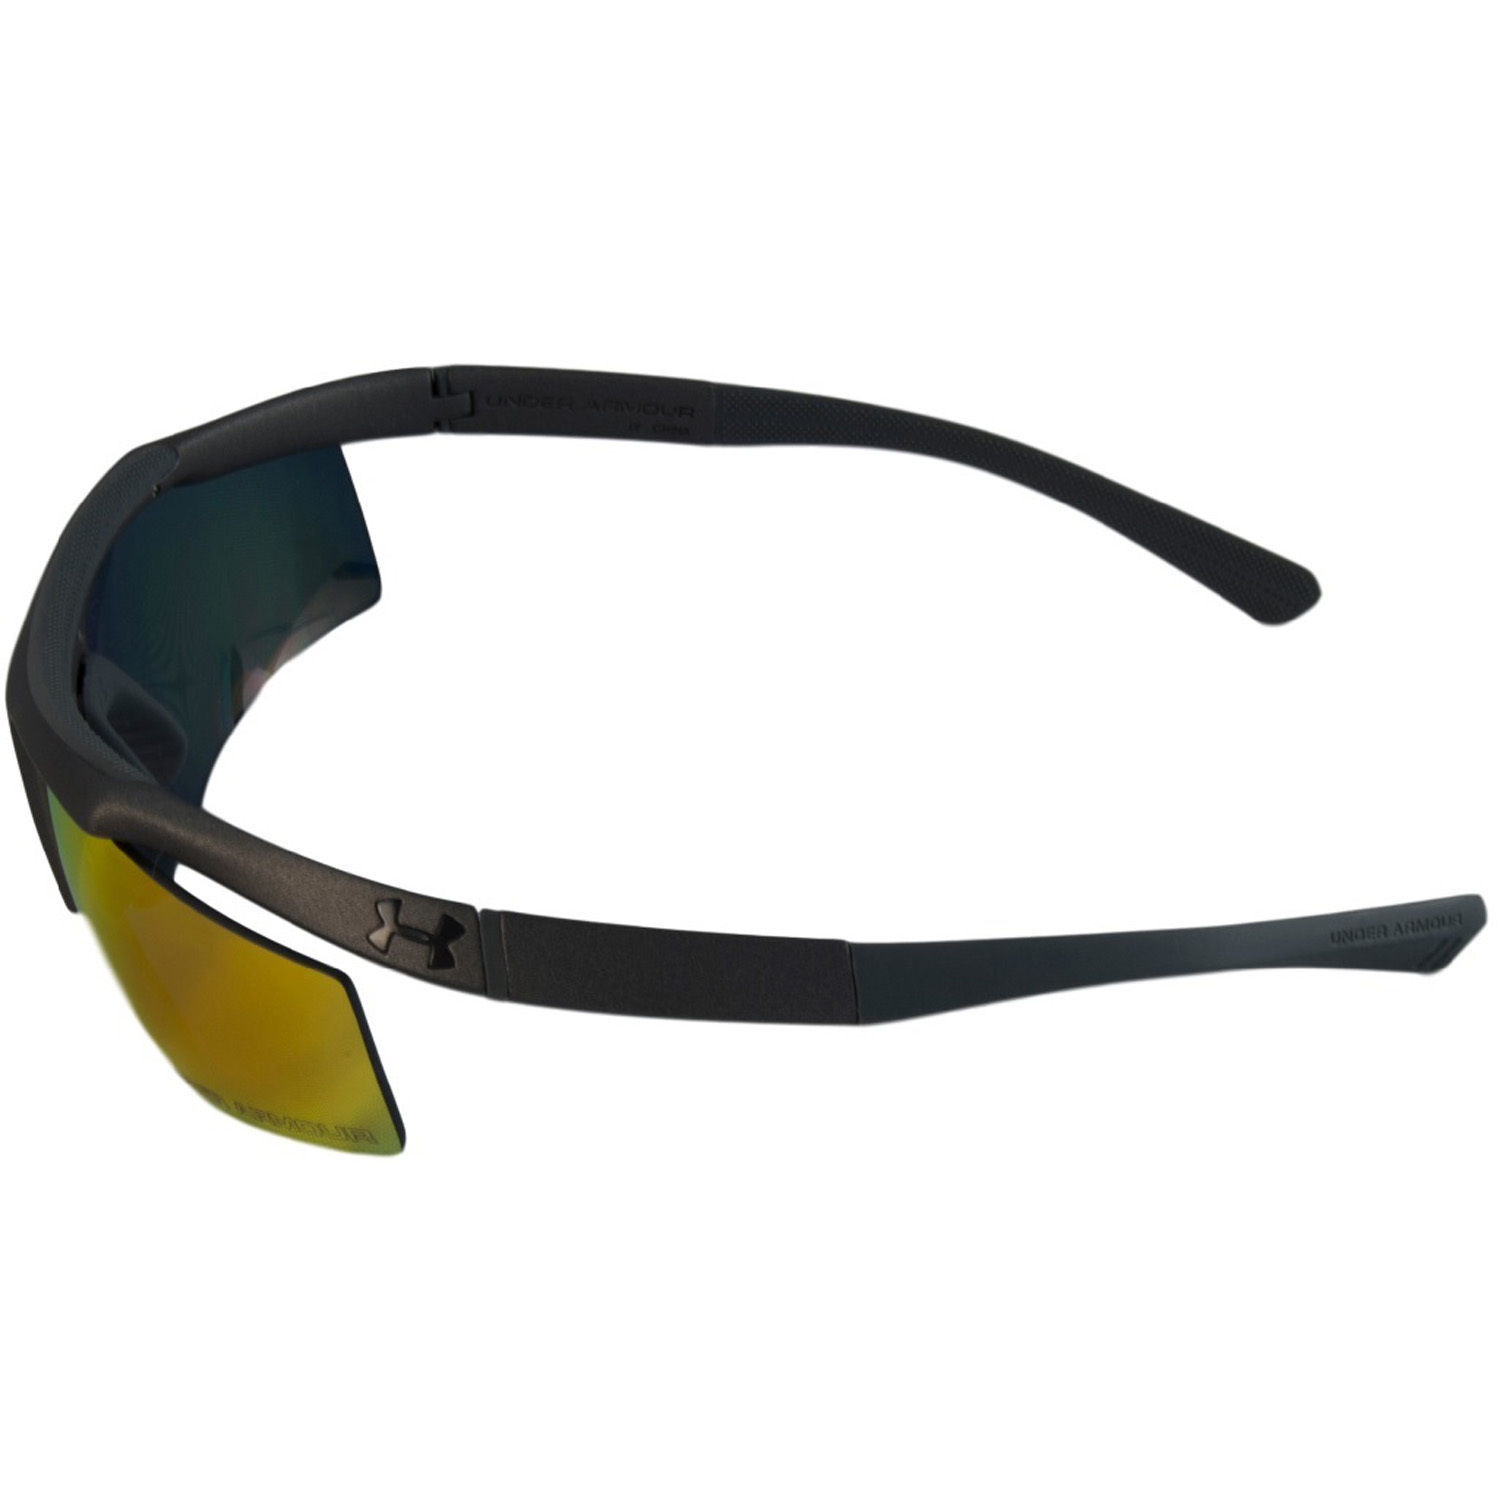 3f015a88fd15a Under Armour Mens Core Sunglasses ✓ Sunglasses Galleries